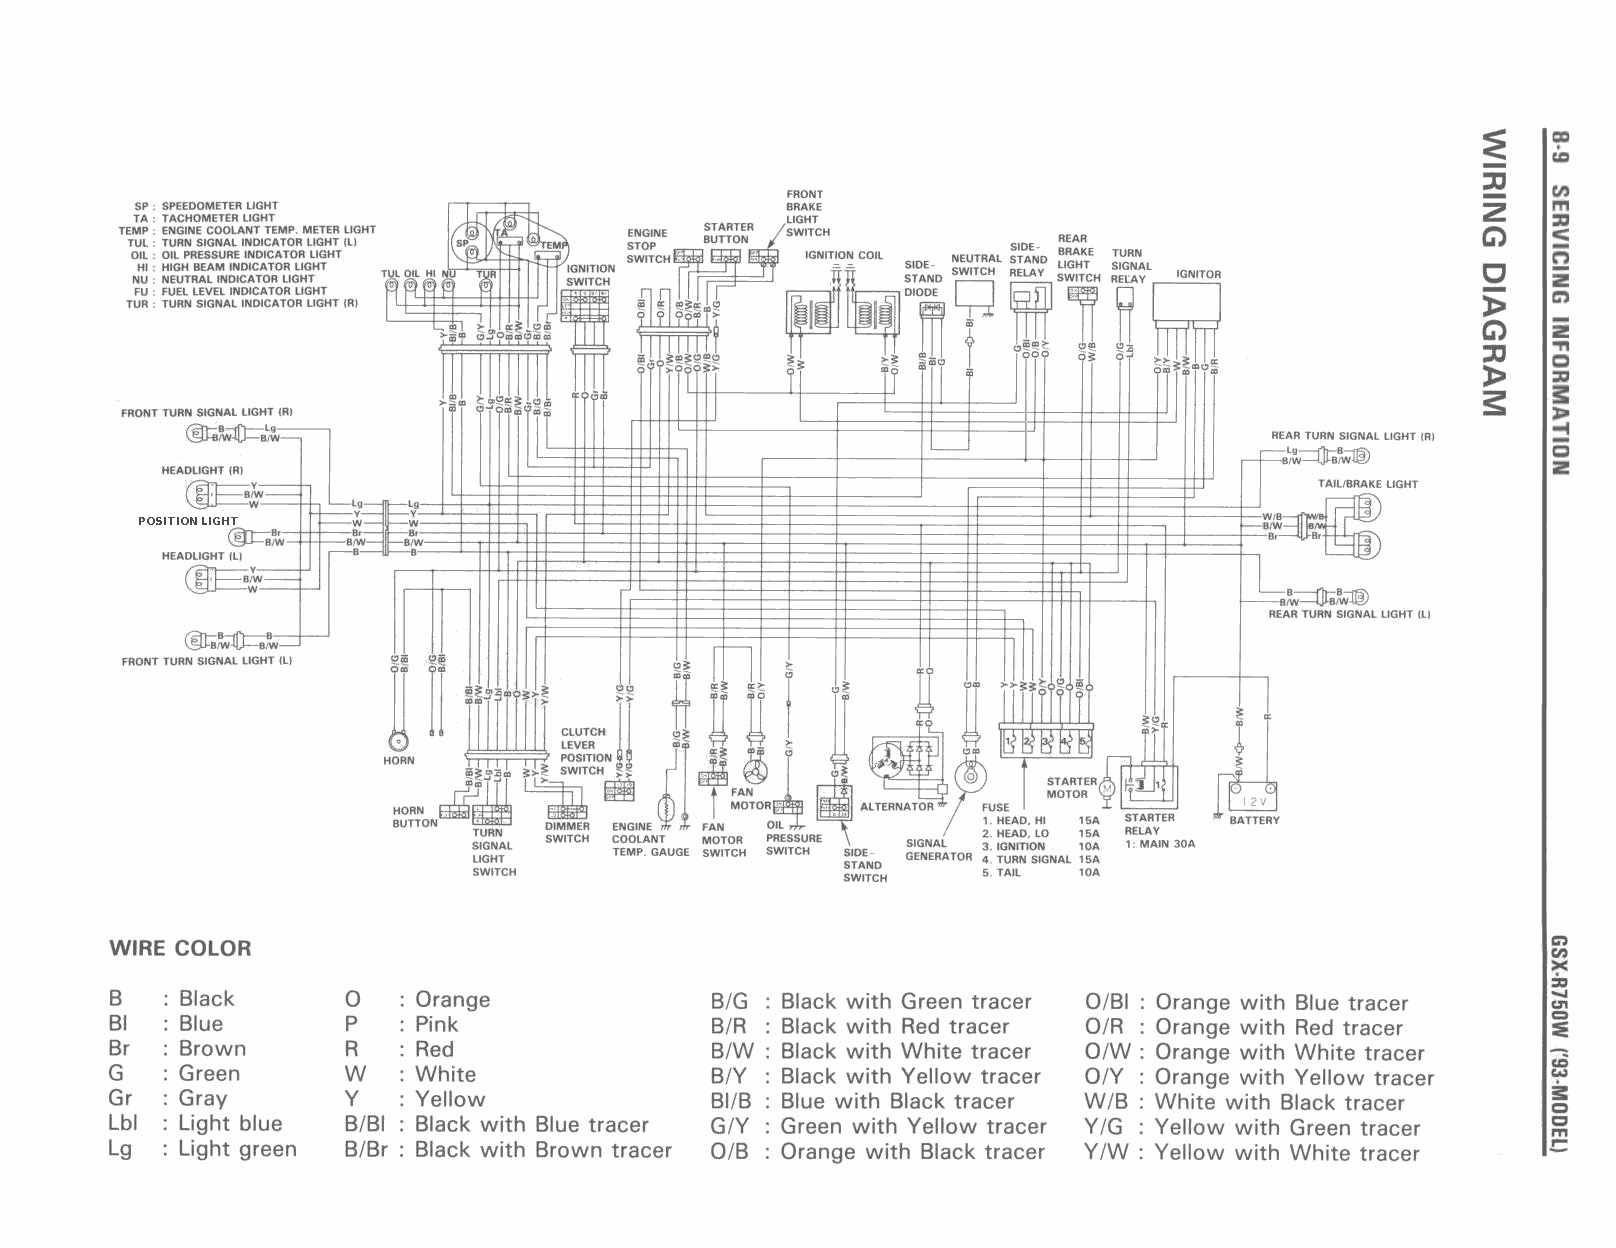 GSXR750 1993 wiring diagram?resize\\=665%2C514 suzuki 06 gsxr wiring 750 diagram bmw r 1150 gs wiring diagram gs750 wiring diagram at bayanpartner.co